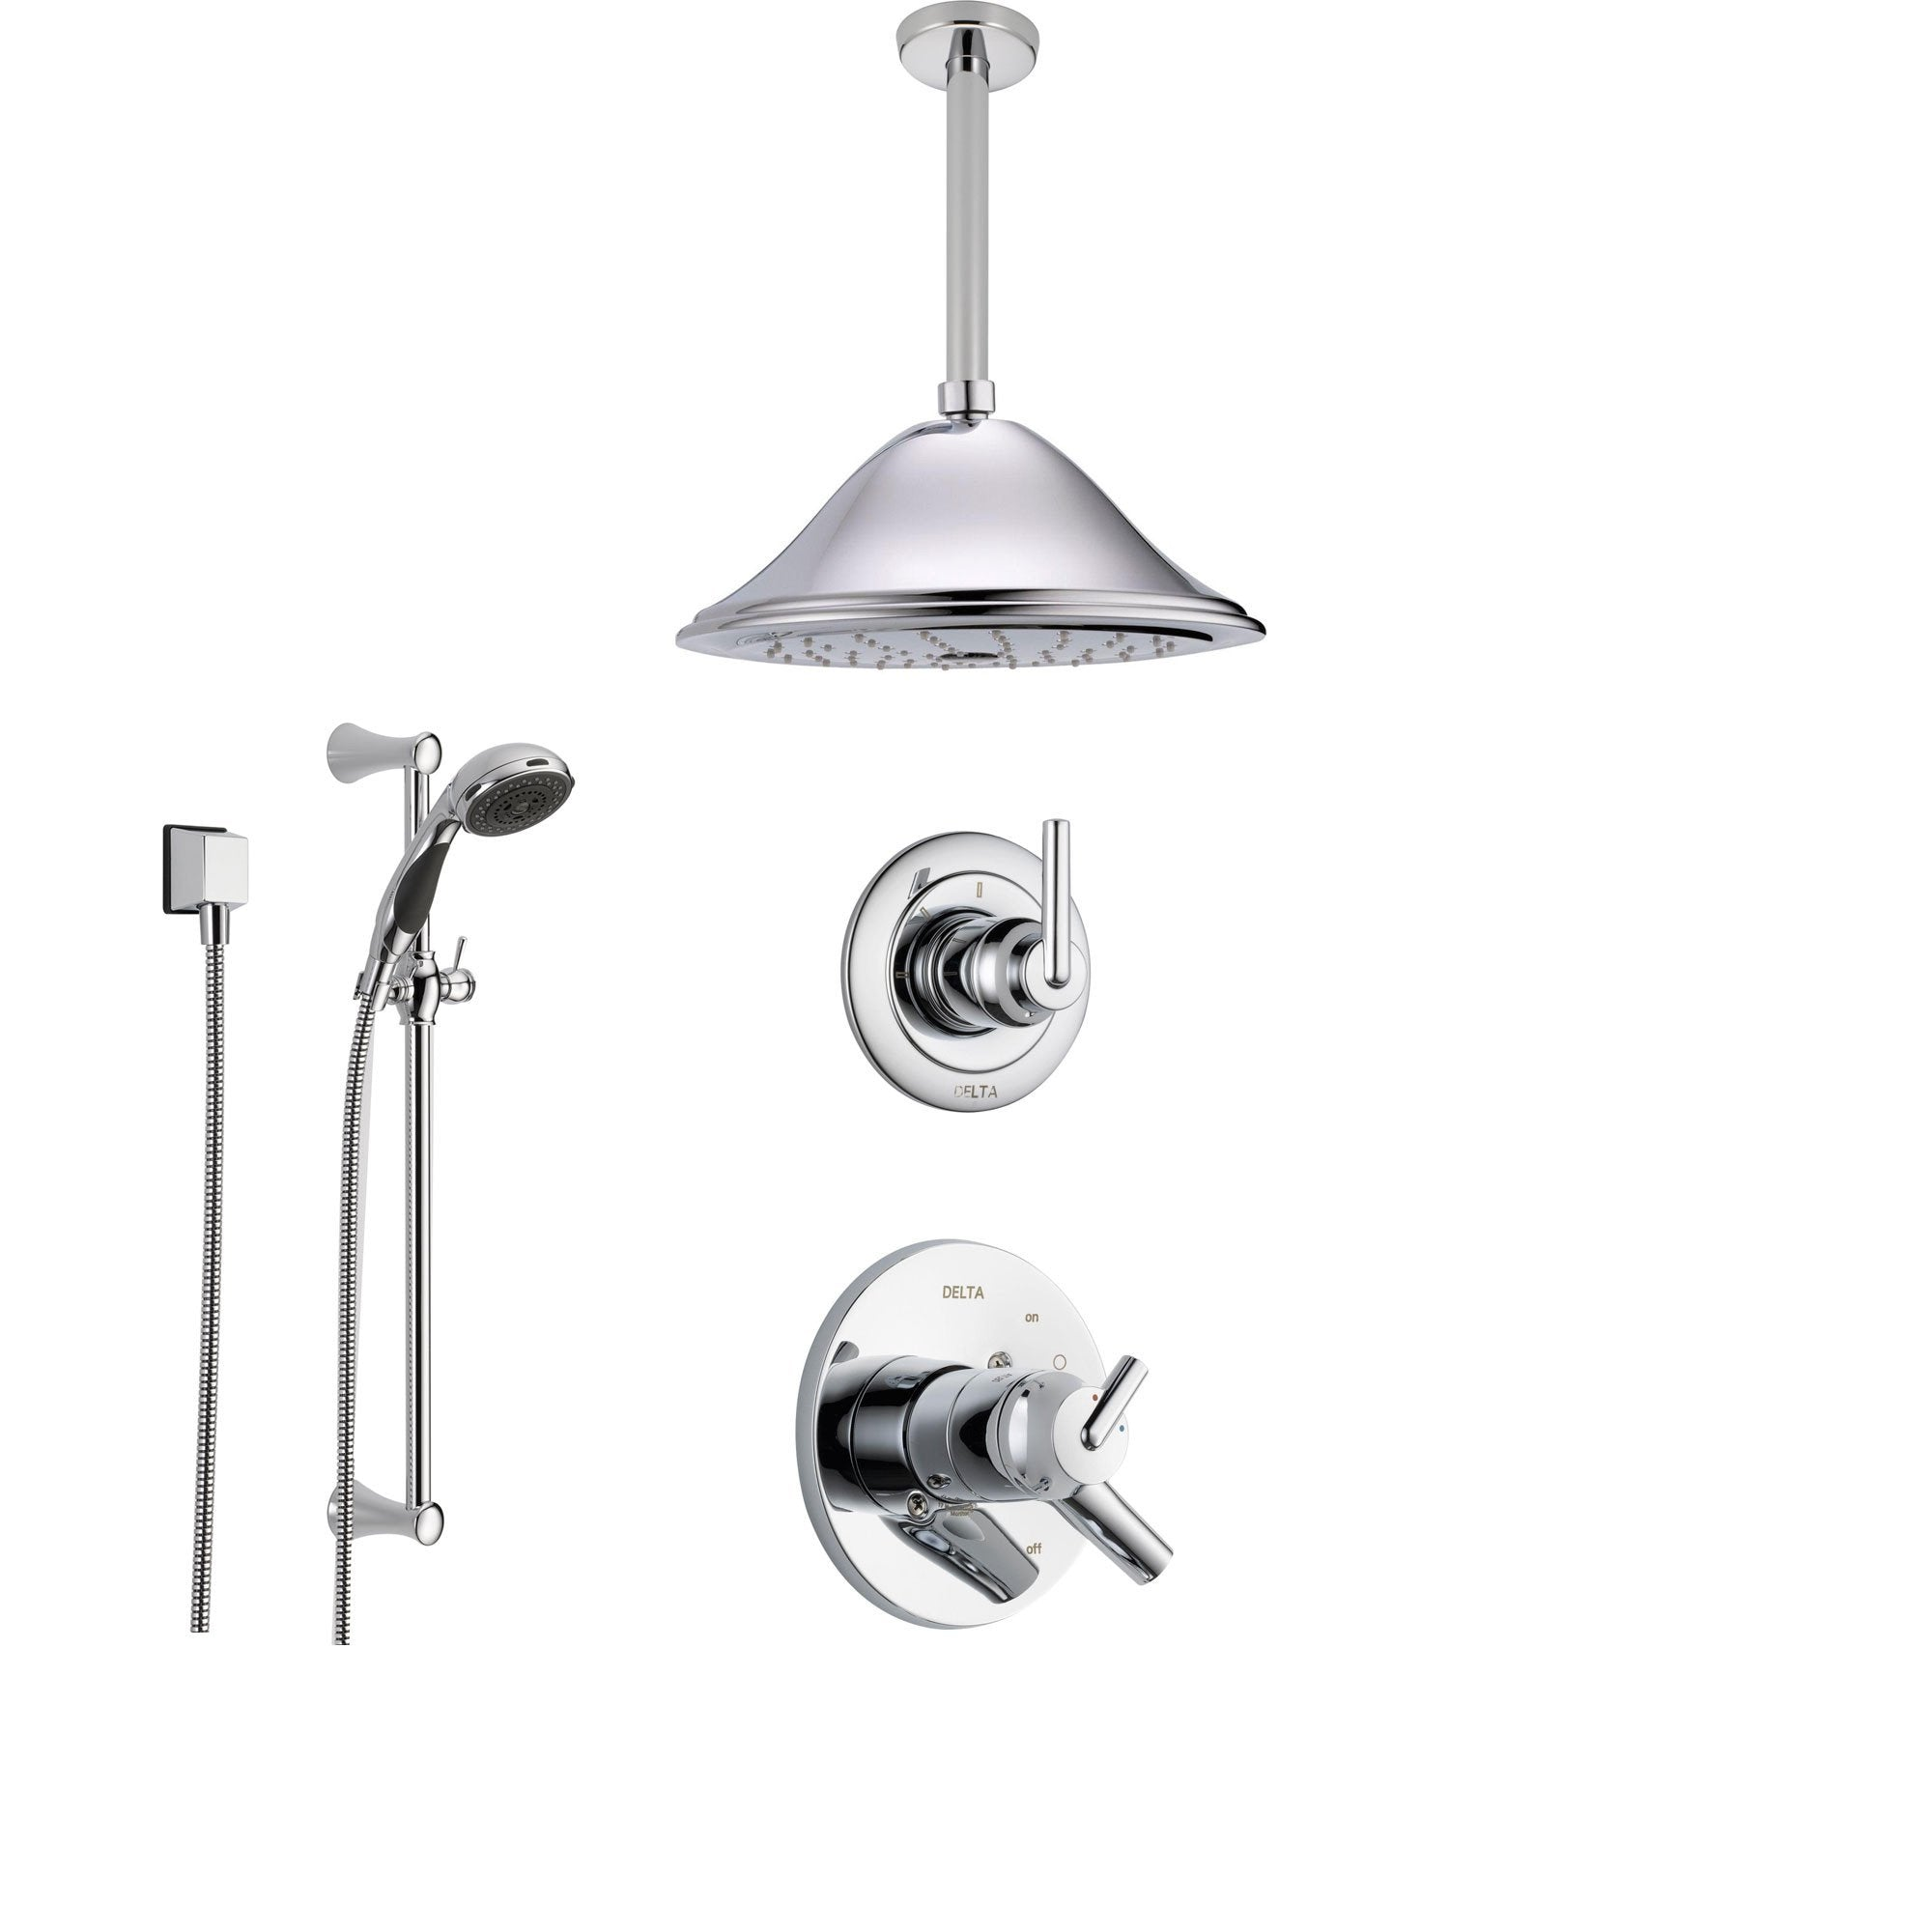 Delta Trinsic Chrome Shower System with Dual Control Shower Handle, 3-setting Diverter, Large Rain Showerhead, and Handheld Shower SS175982